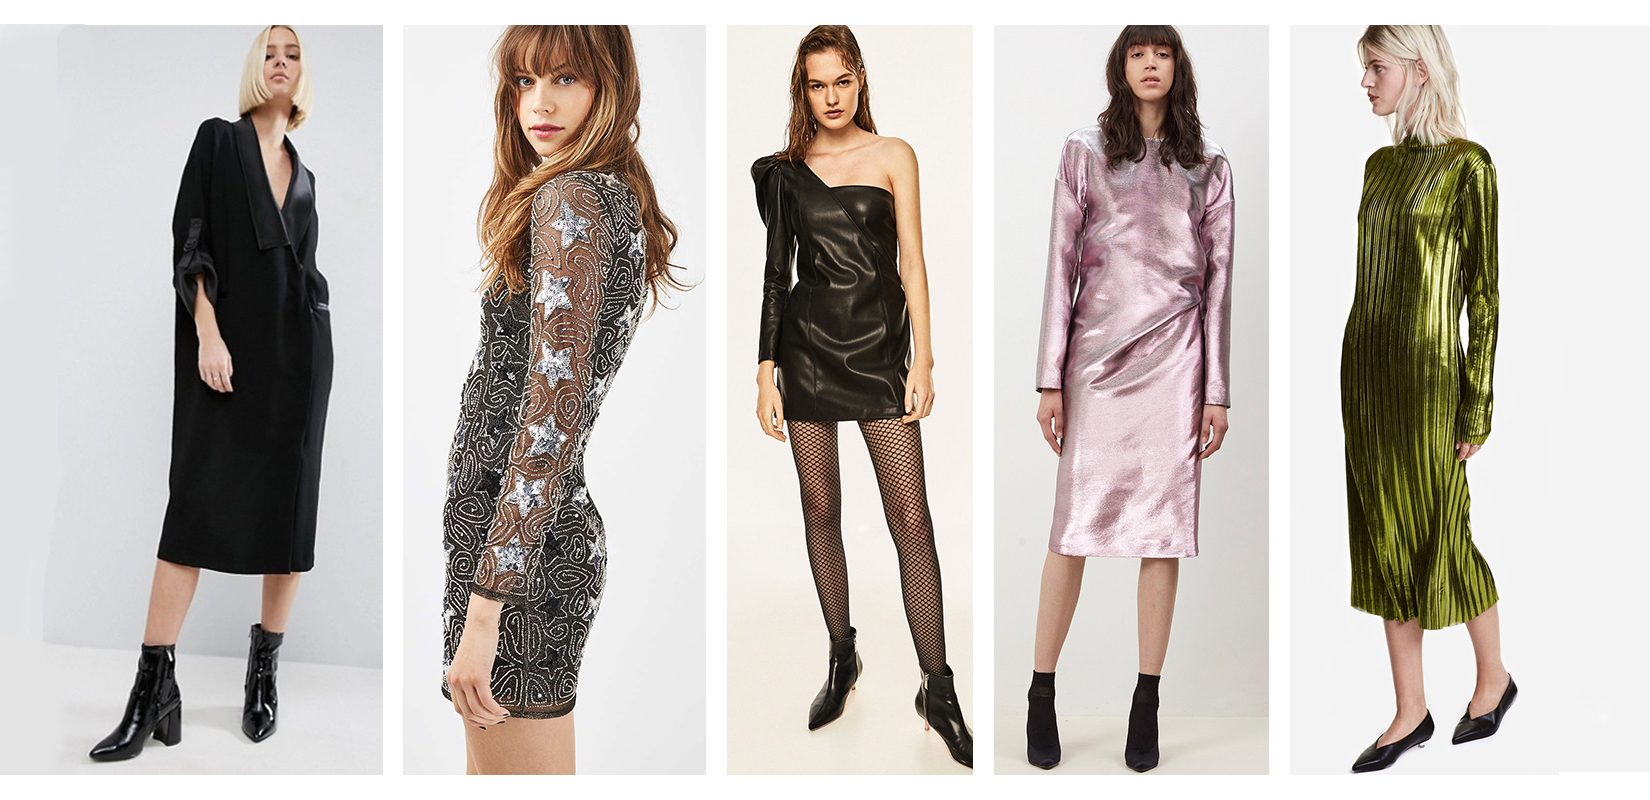 cf07e72a3095 New Year's Eve Dresses That Are Actually Cool | Sidewalk Hustle